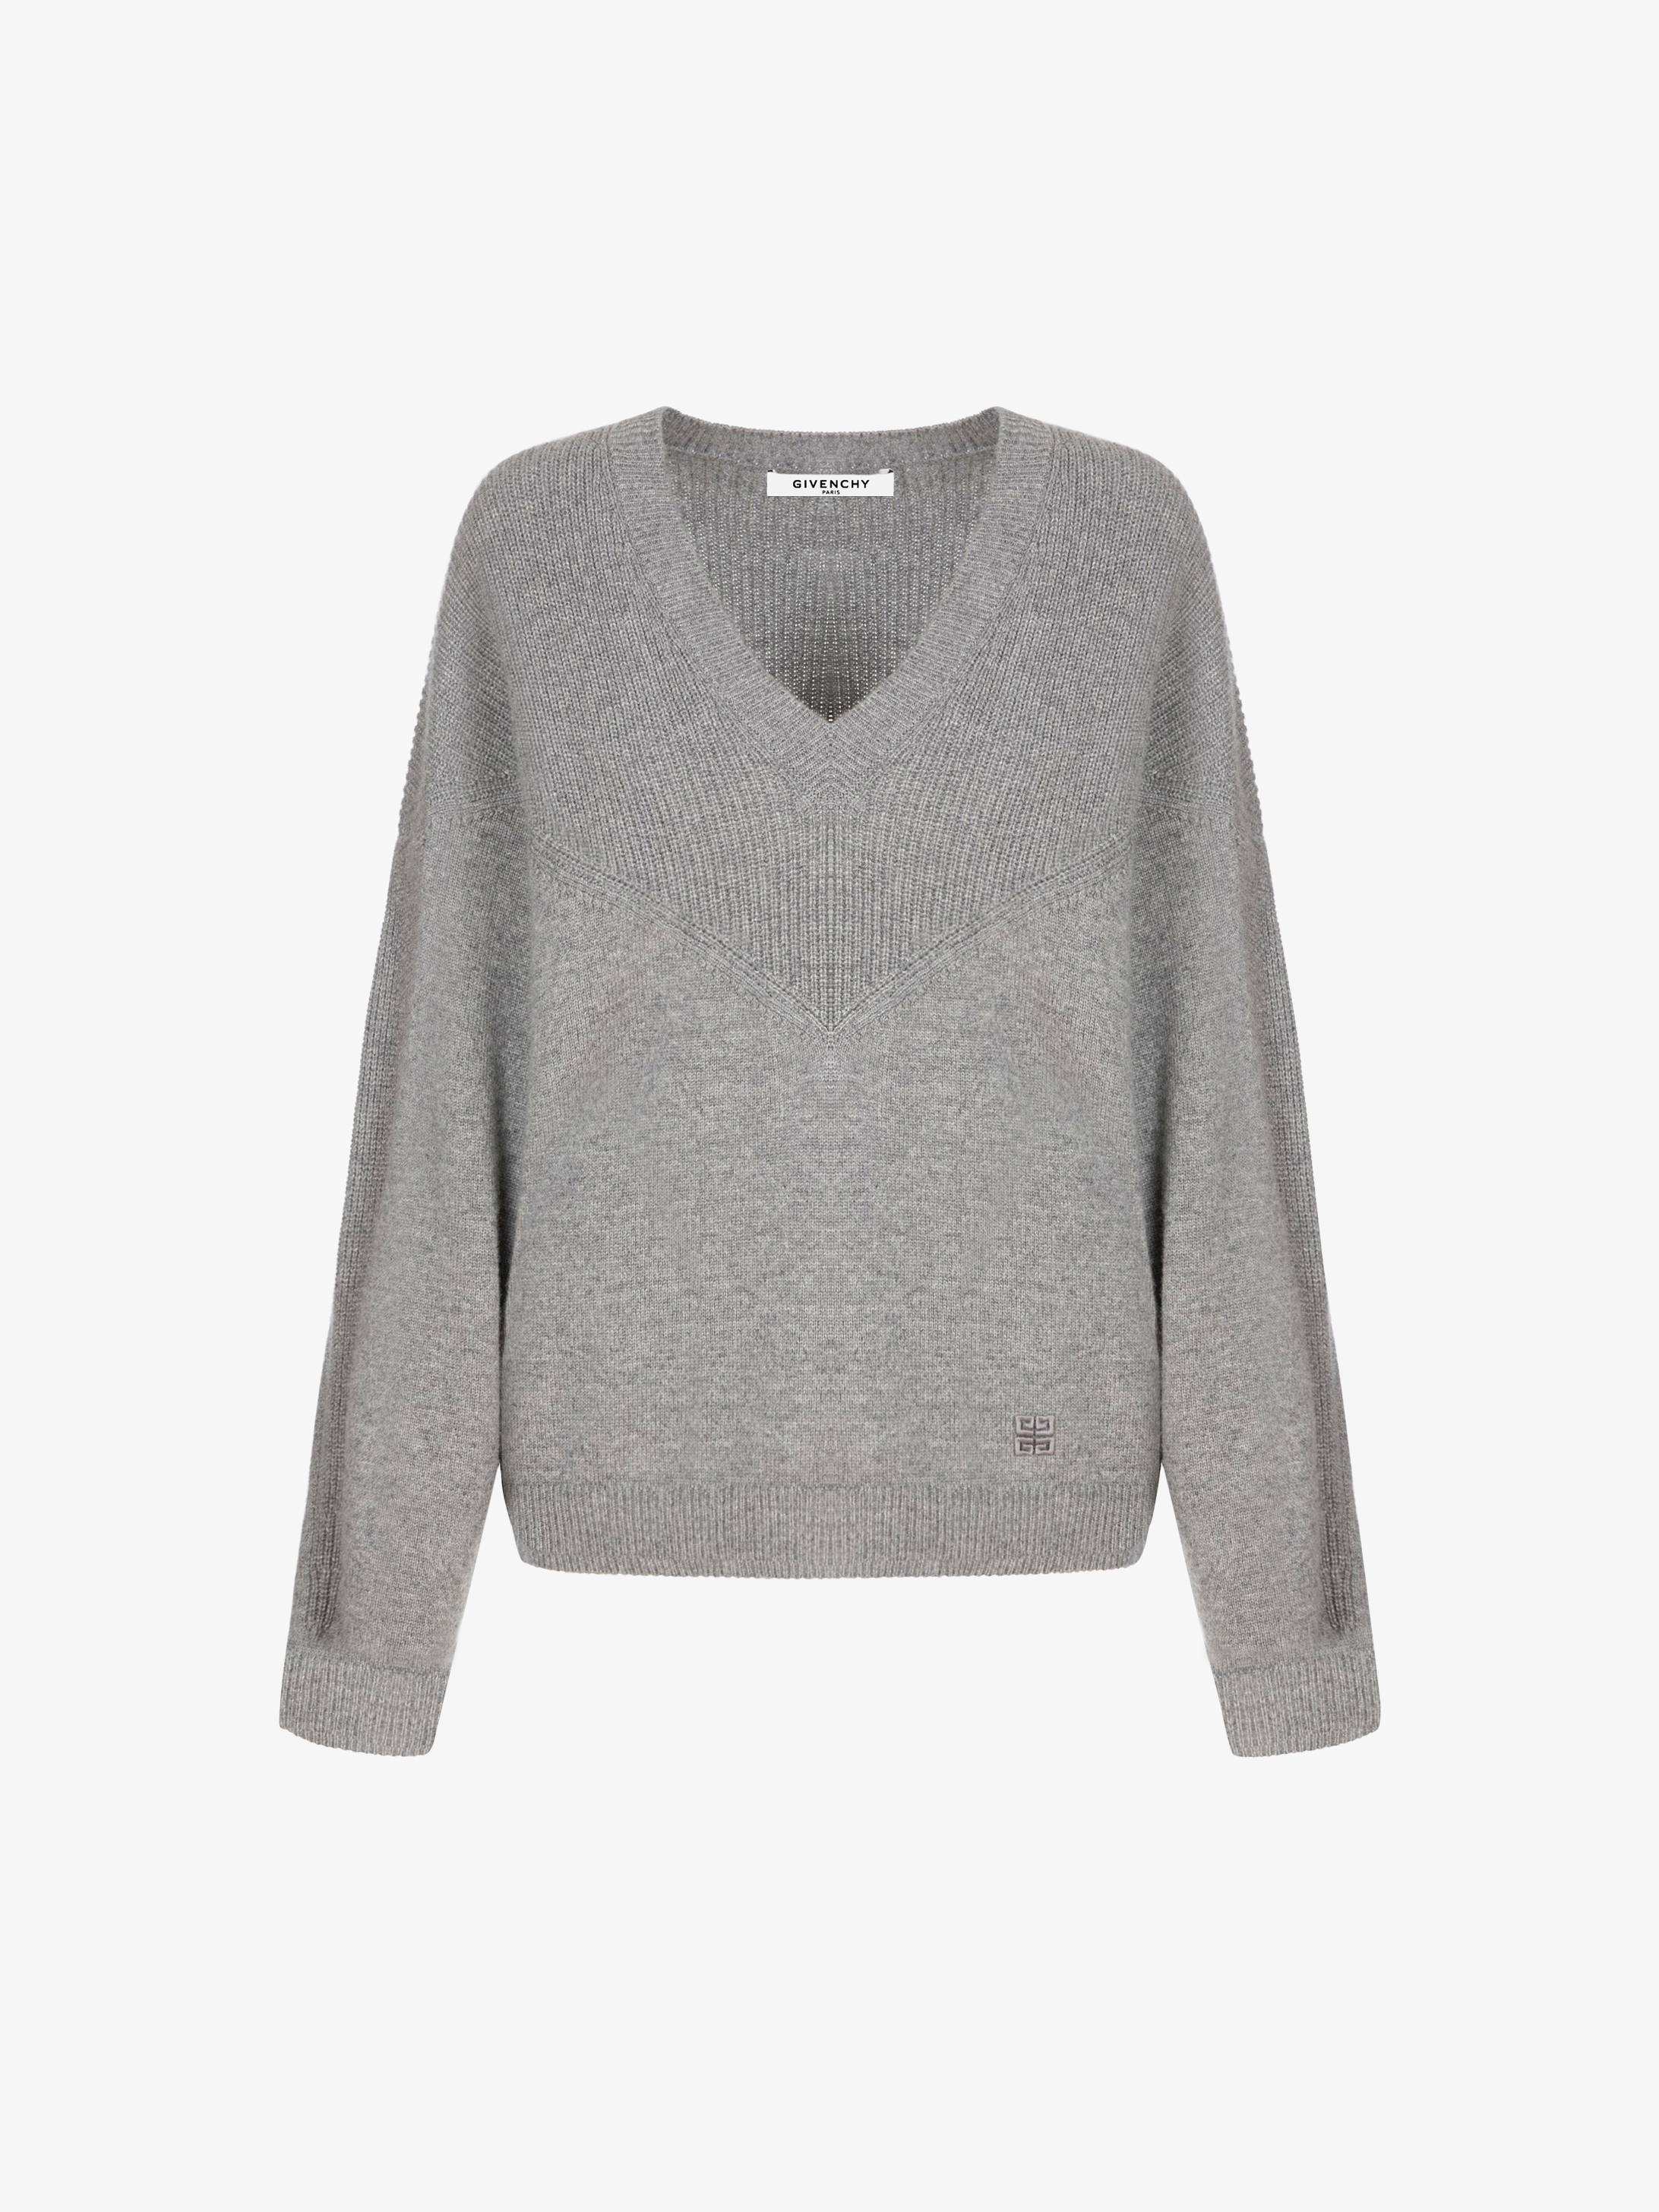 Bat sleeves sweater in cashmere